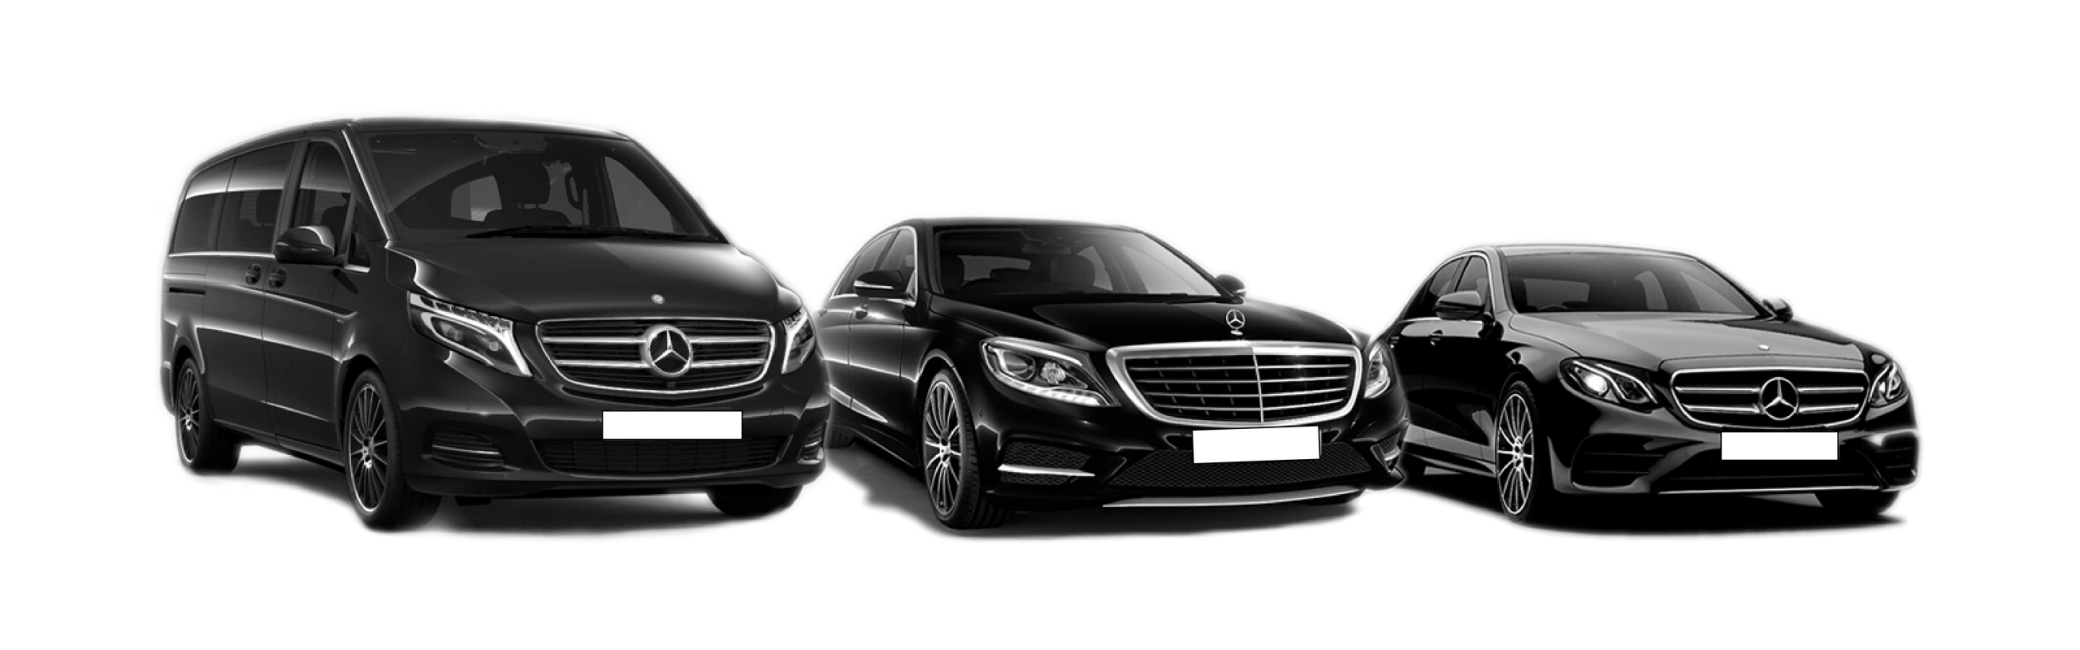 Taxi Brussels Airport Cab Brussels airport Taxi Charleroi Airport Taxi brussels Charleroi